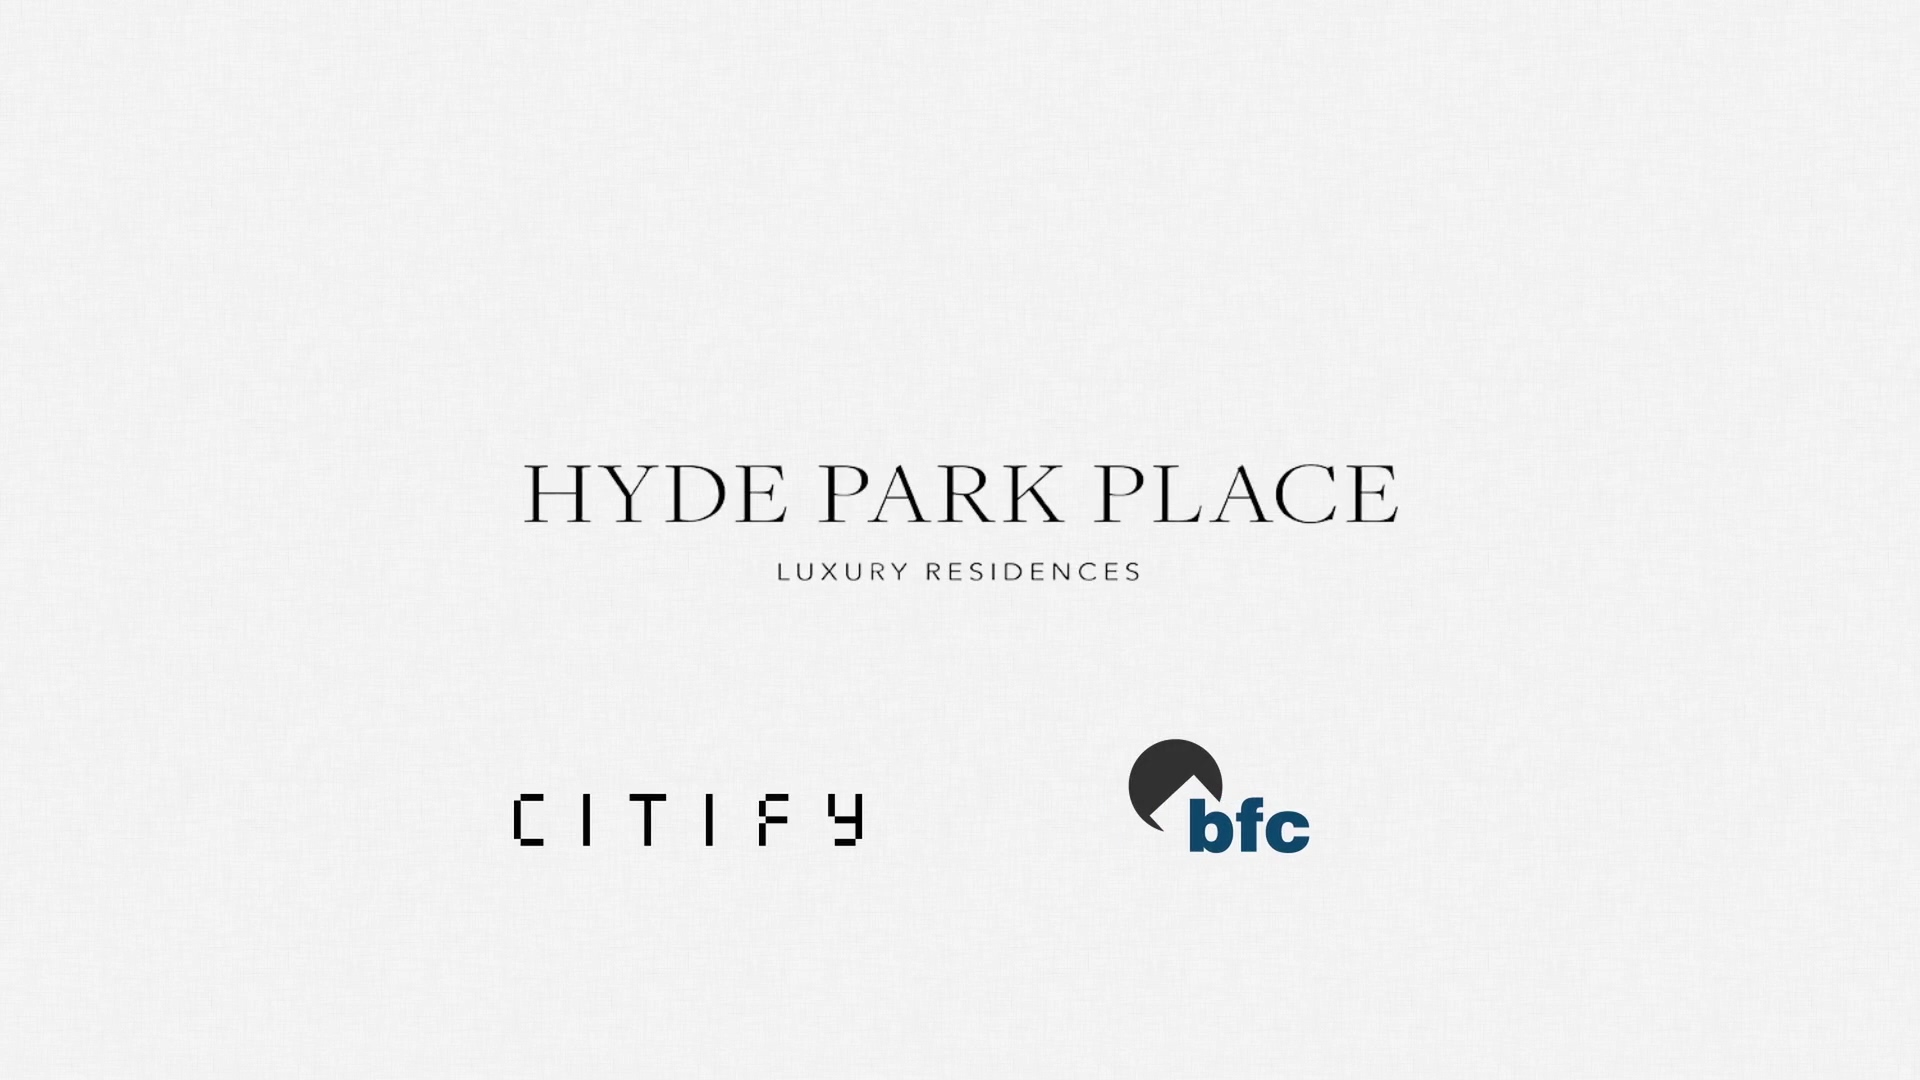 Citify - Hyde Park - May 2020